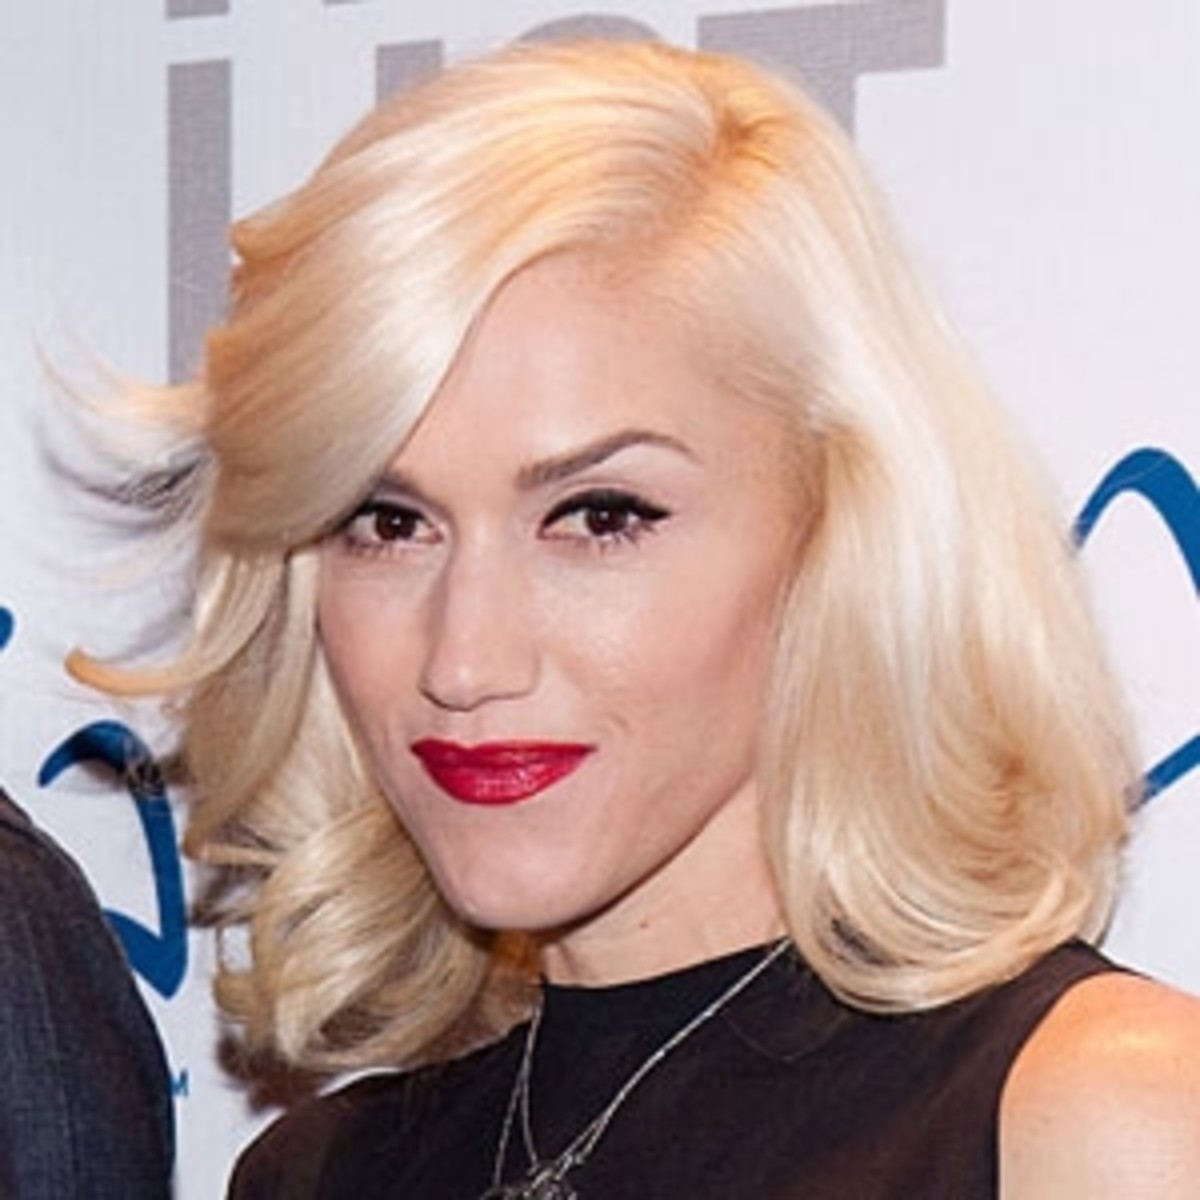 Gwen Stefani with White Blonde Hair